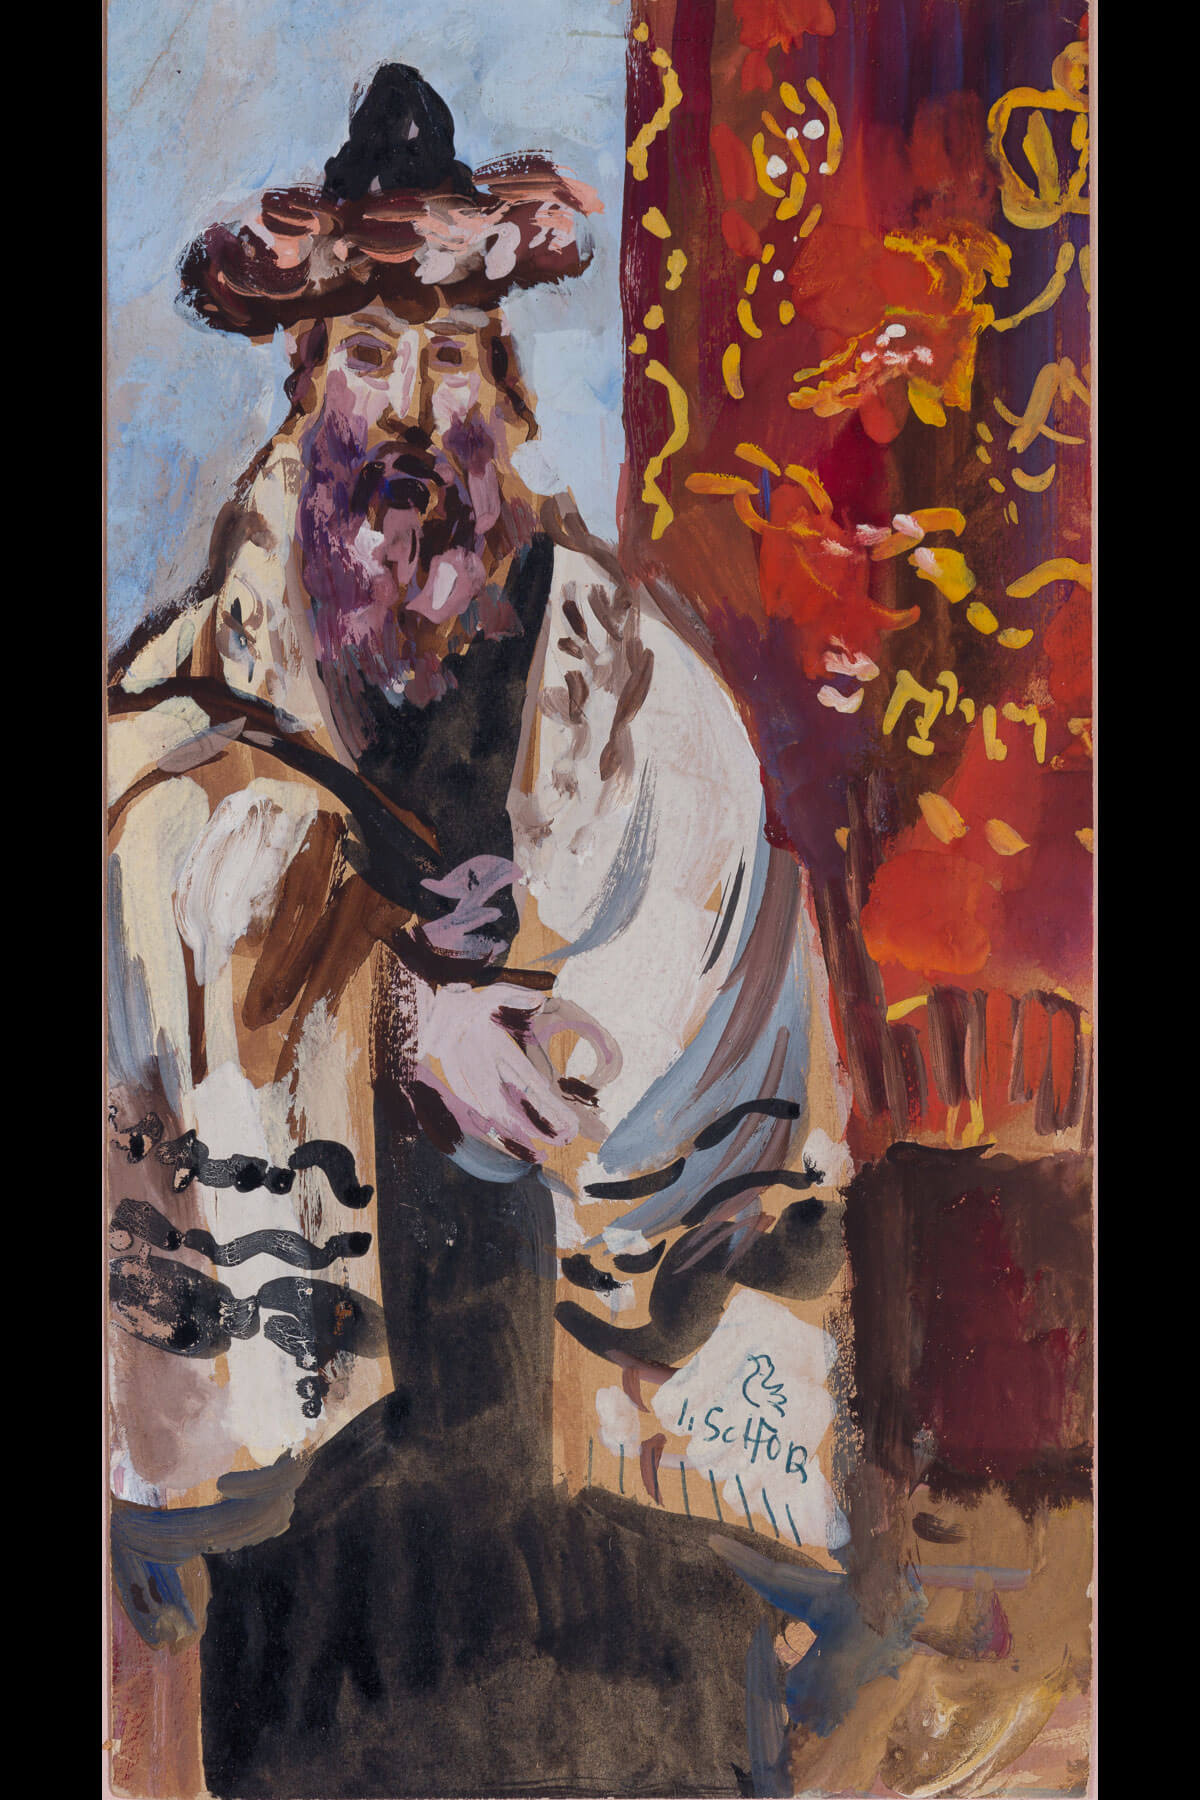 162. Simchat Torah by Ilya Schor